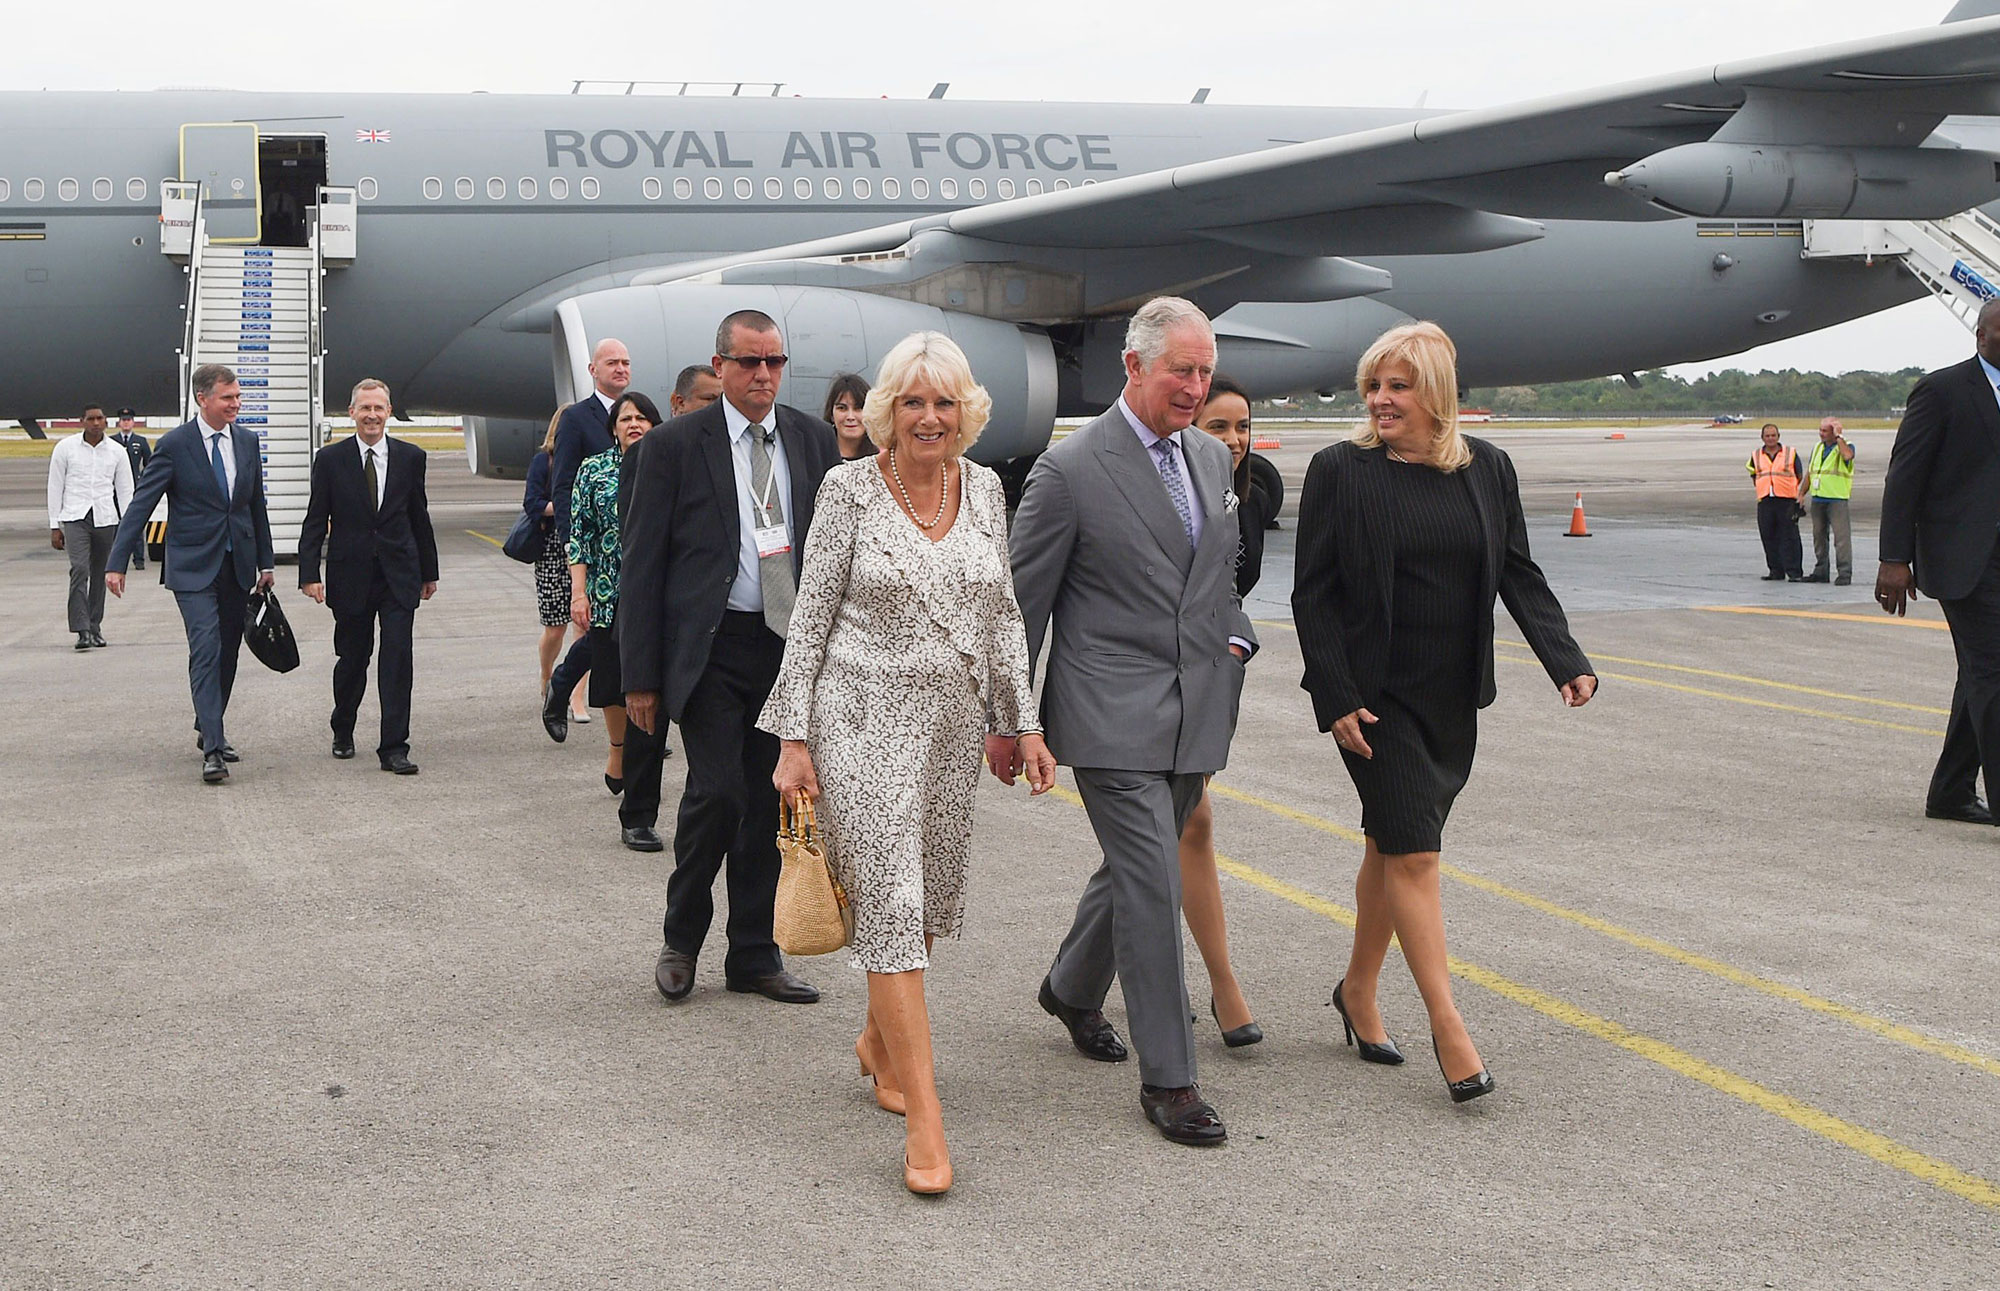 British royals Prince Charles and Camilla, Duchess of Cornwall, exiting their plane in Havana, Cuba ( Image )